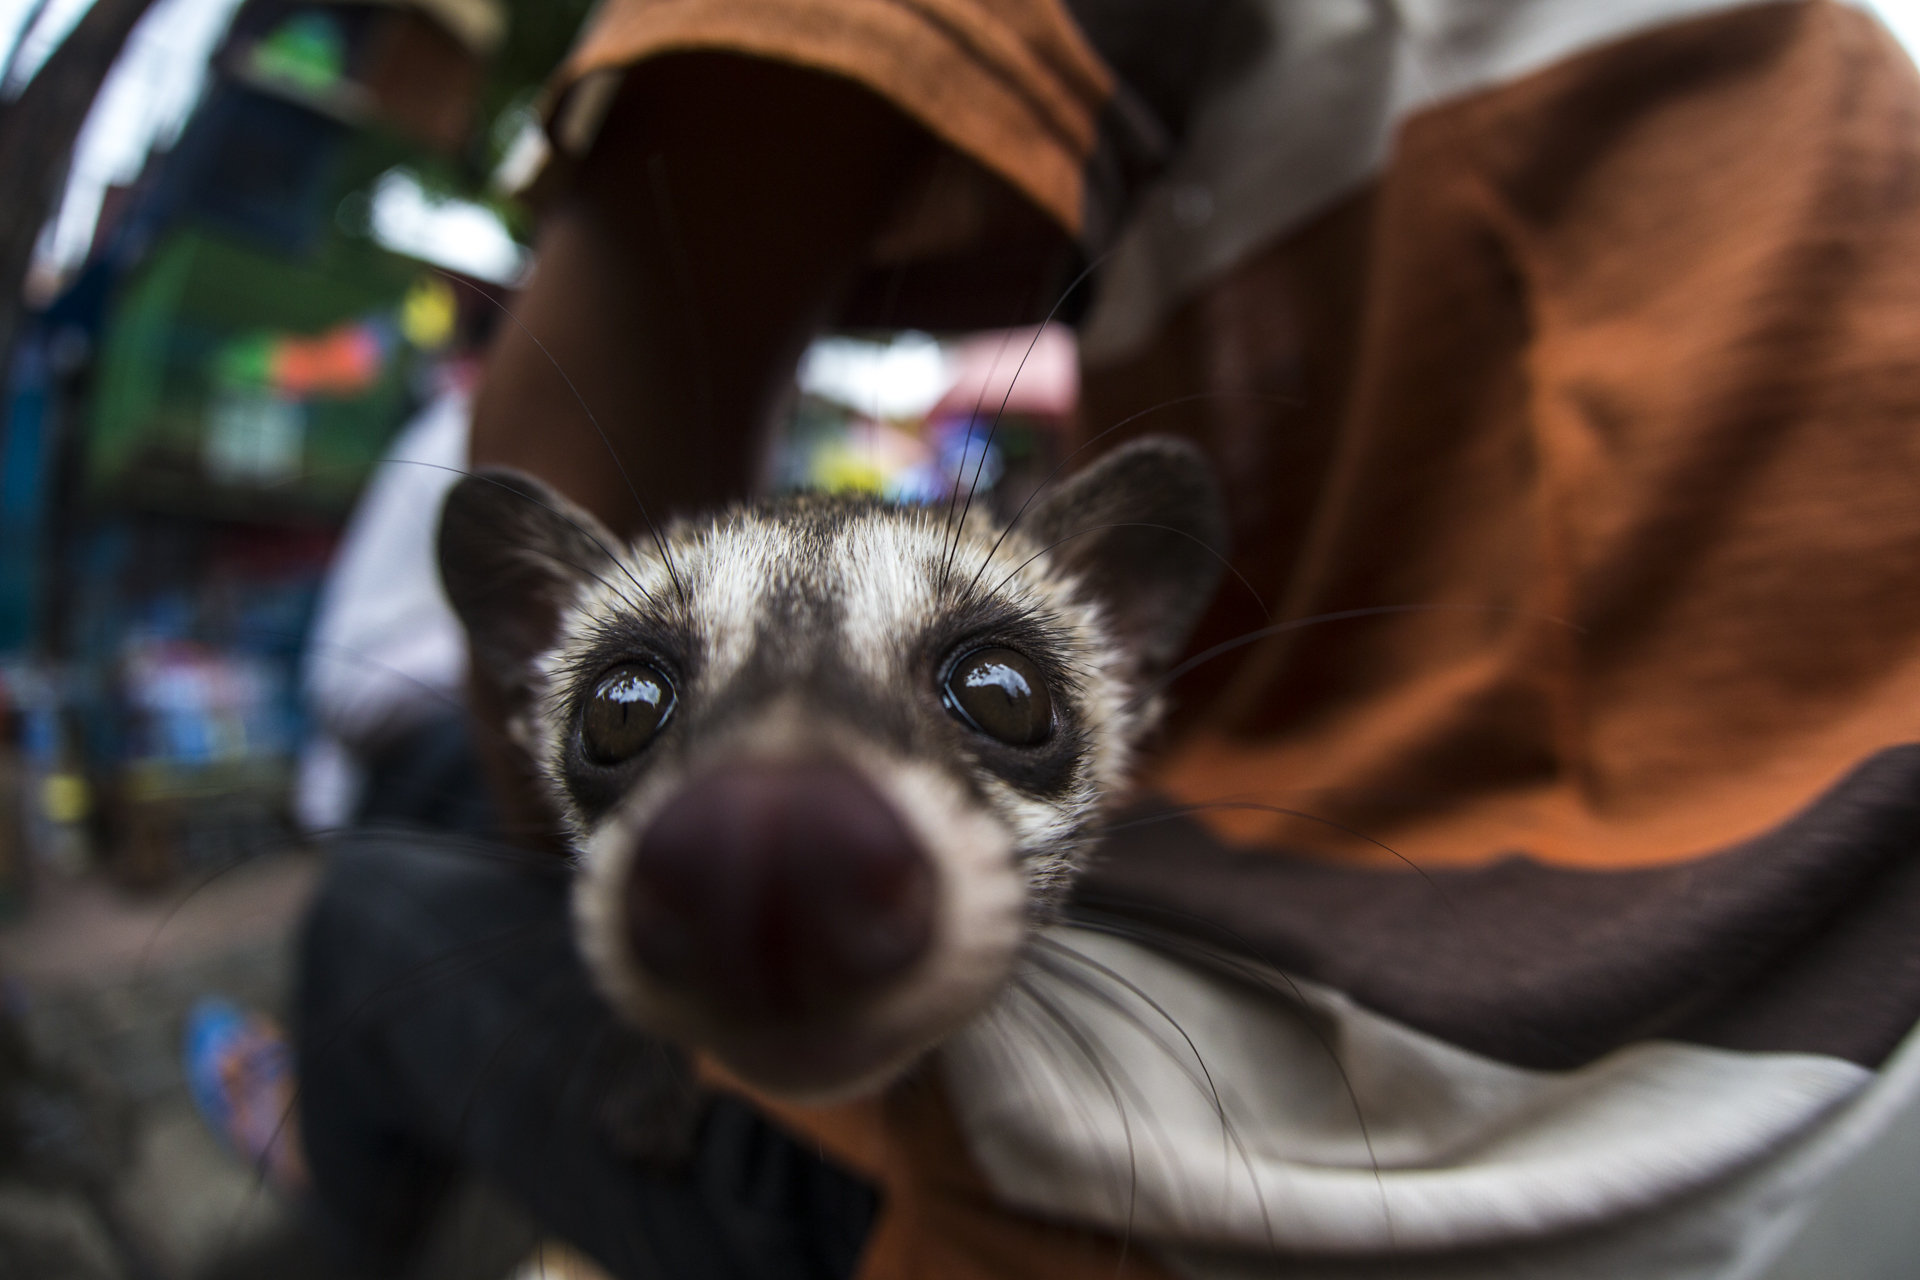 A market trader showcased each of his 'products' by taking them out of their cages and holding them, showing them off to potential buyers. Species such as this palm civet were for sale.